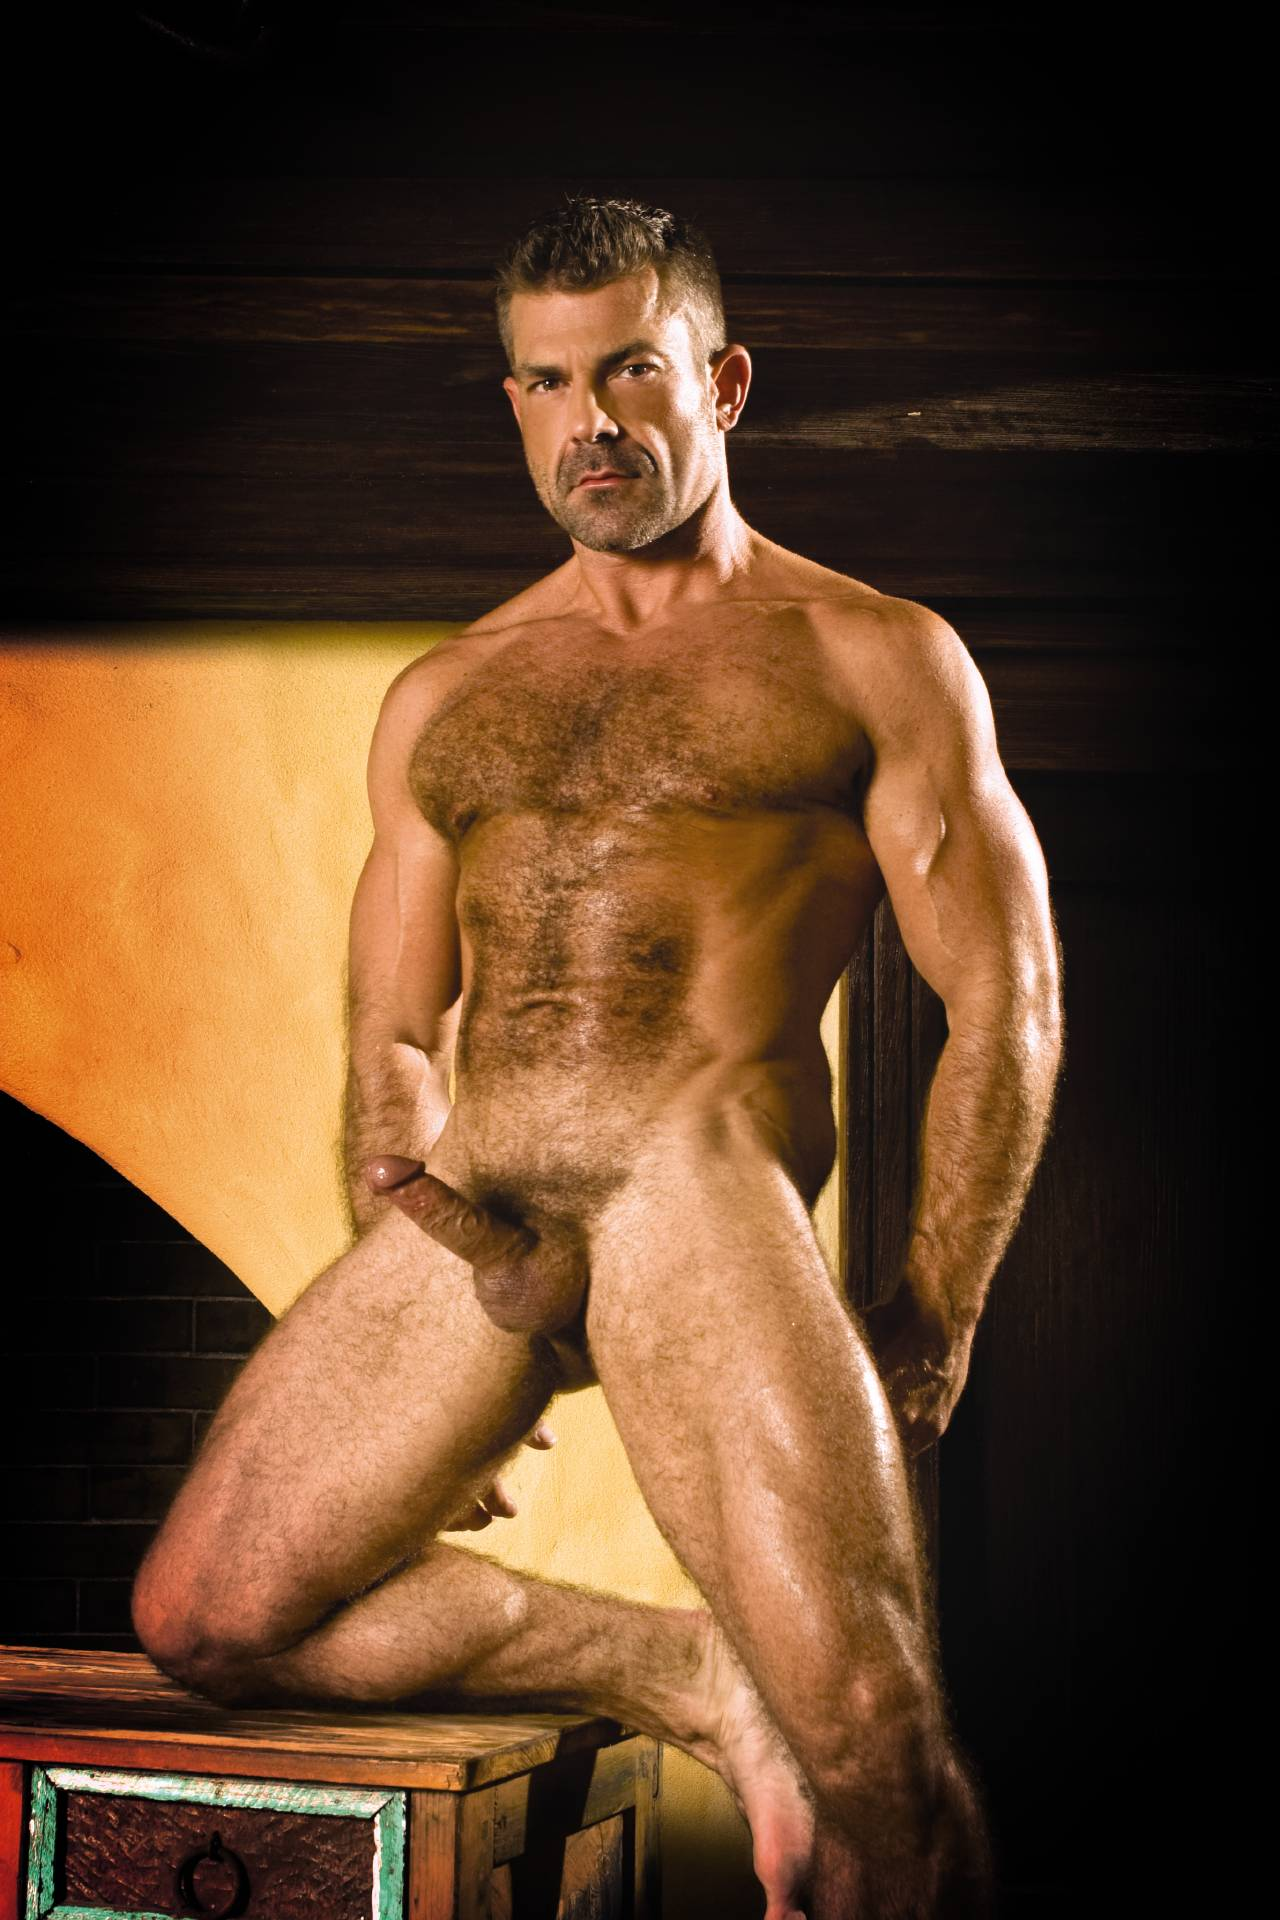 from Eliseo gay bond